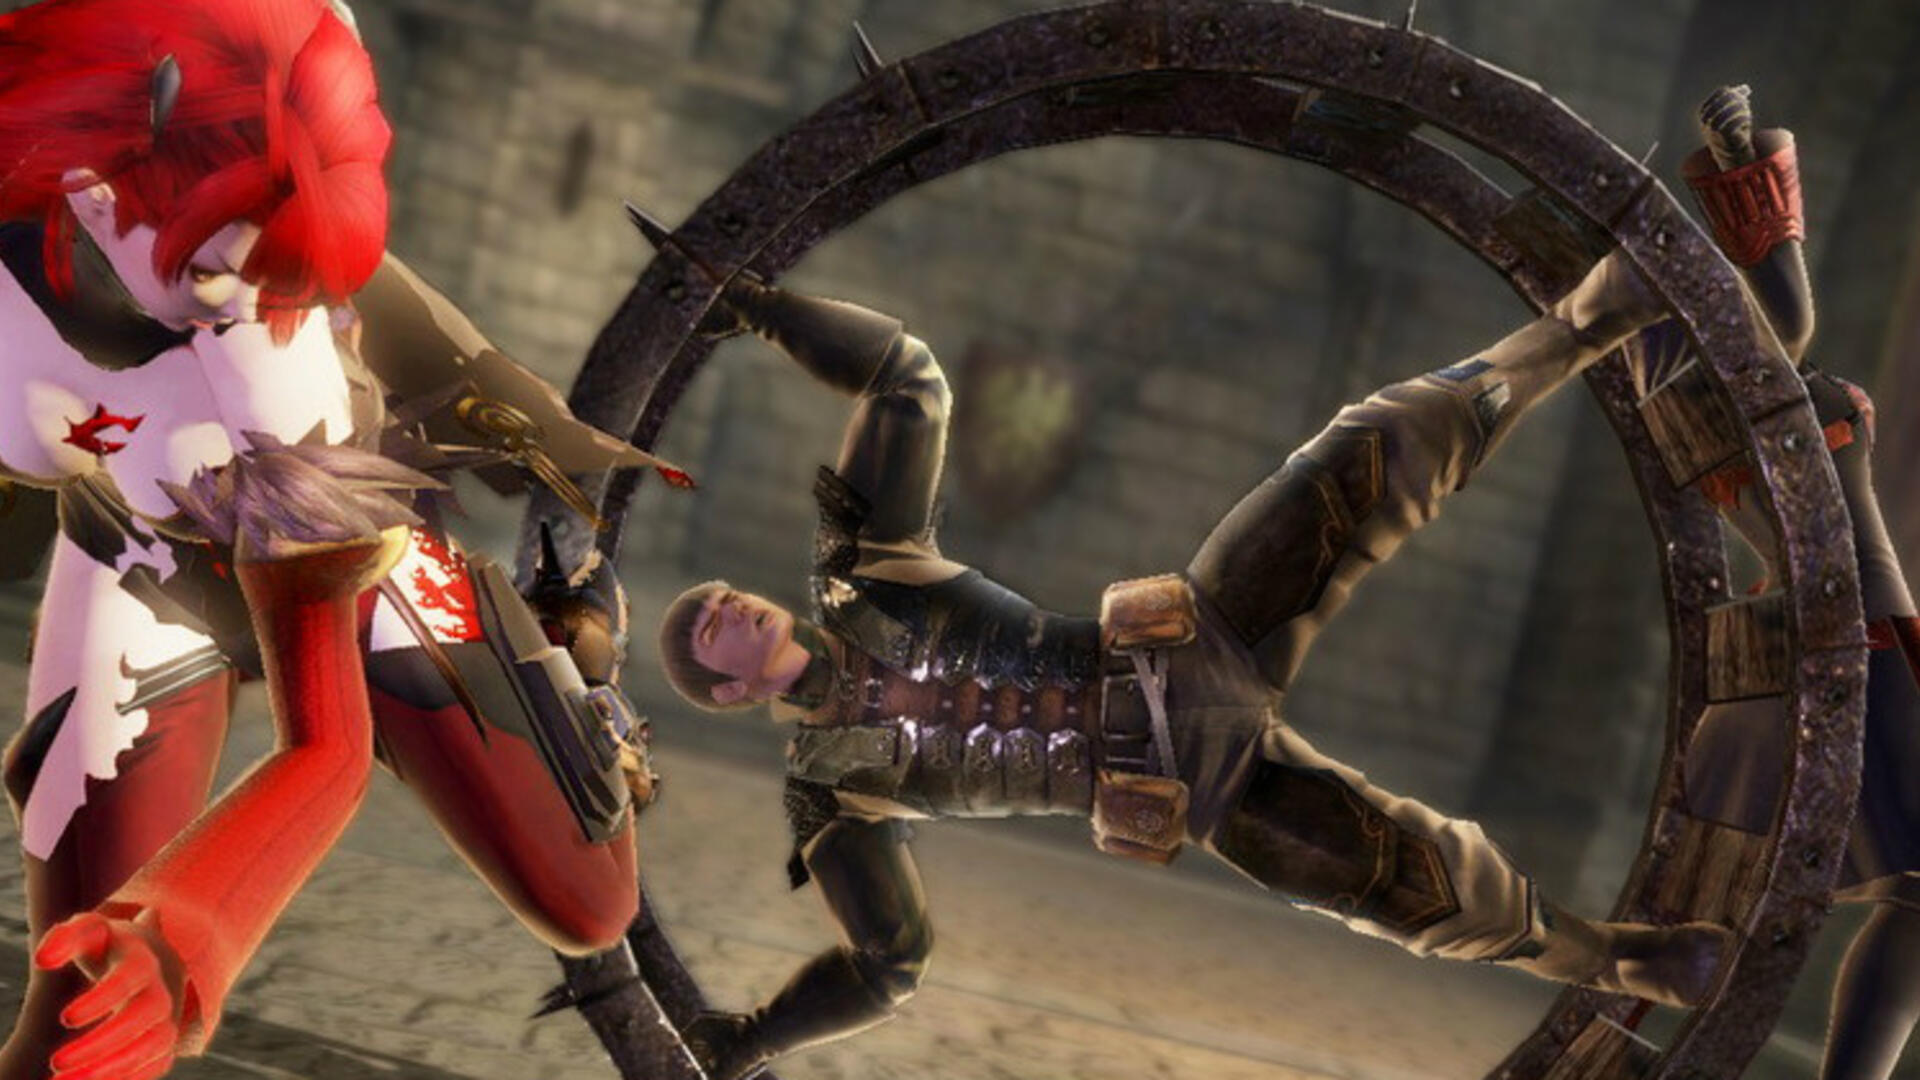 Deception IV The Nightmare Princess PS4 Review: Getting Back on That Delta Horse